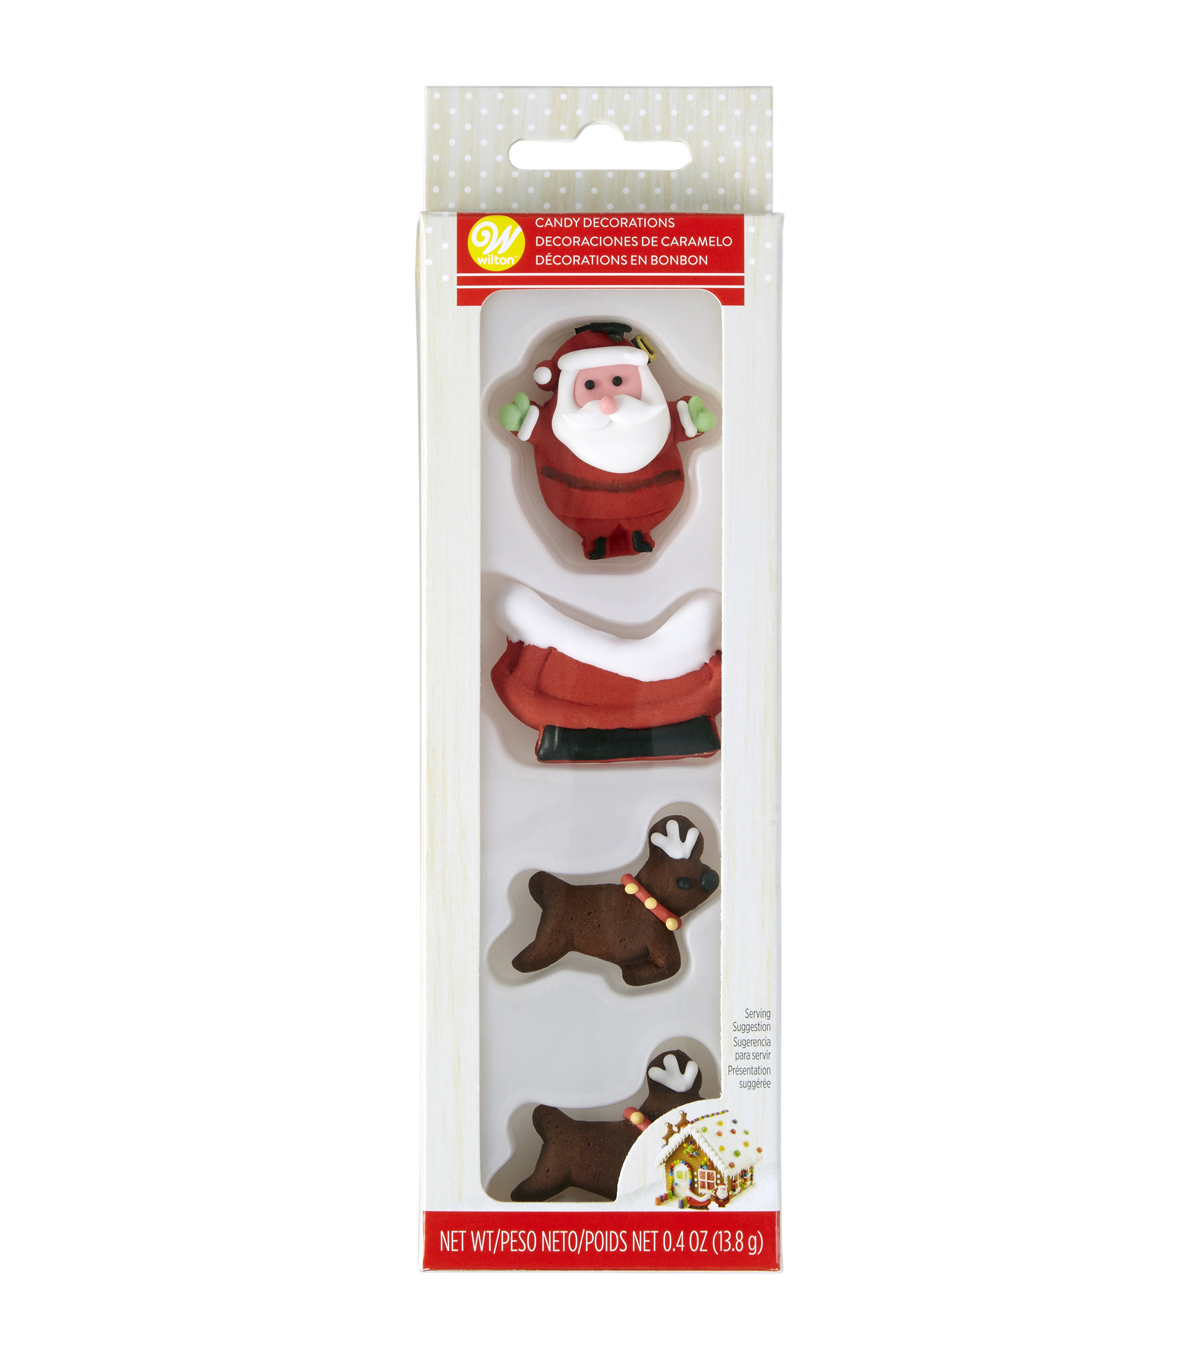 Wilton Gingerbread House Santa & Reindeer Sleigh Candy Decorations